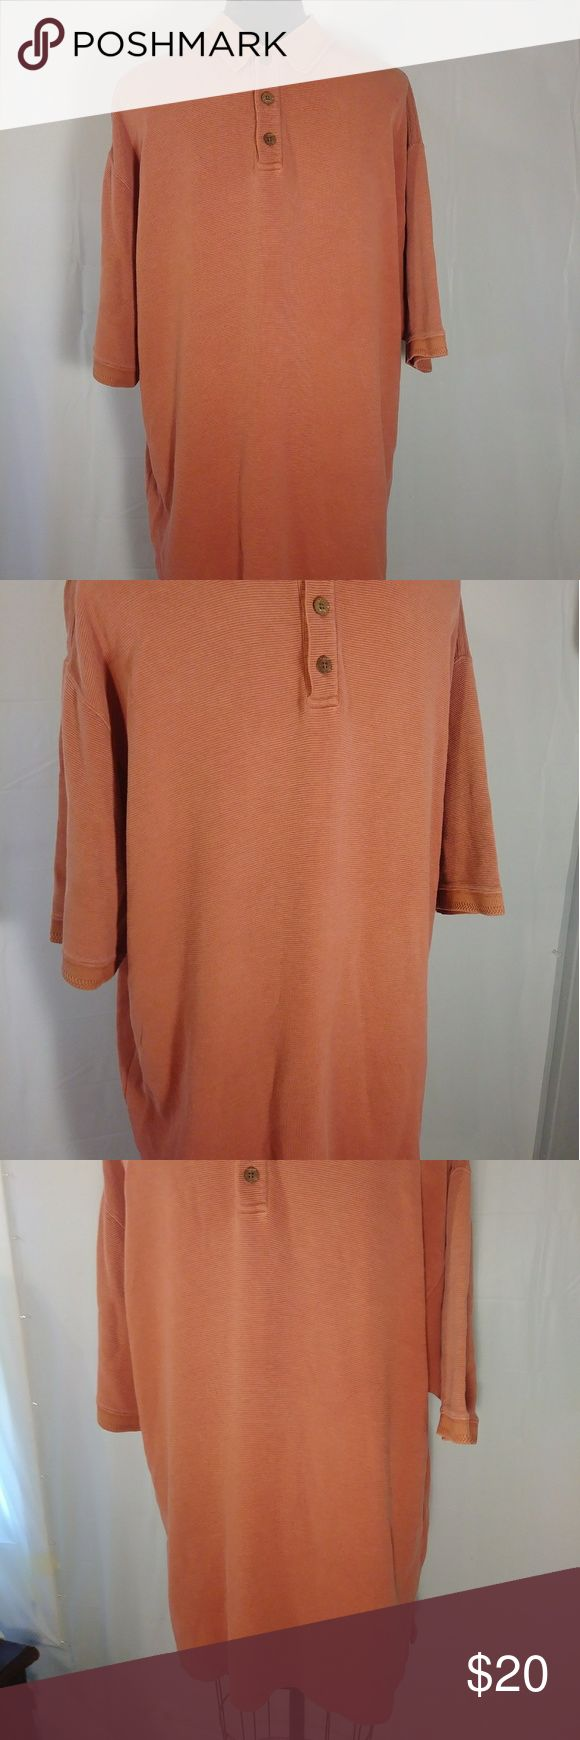 Tommy Bahama Polo Shirt Large Red Top Golf Wear Ca Tommy Bahama red polo shirt size large. Excellent pre-loved condition, no one else will know it's not new! Extra button attached to inside tag.  RN# 54545  Offers always welcome! Expedited shipping & free gift wrapping available upon request. Tommy Bahama Shirts Polos